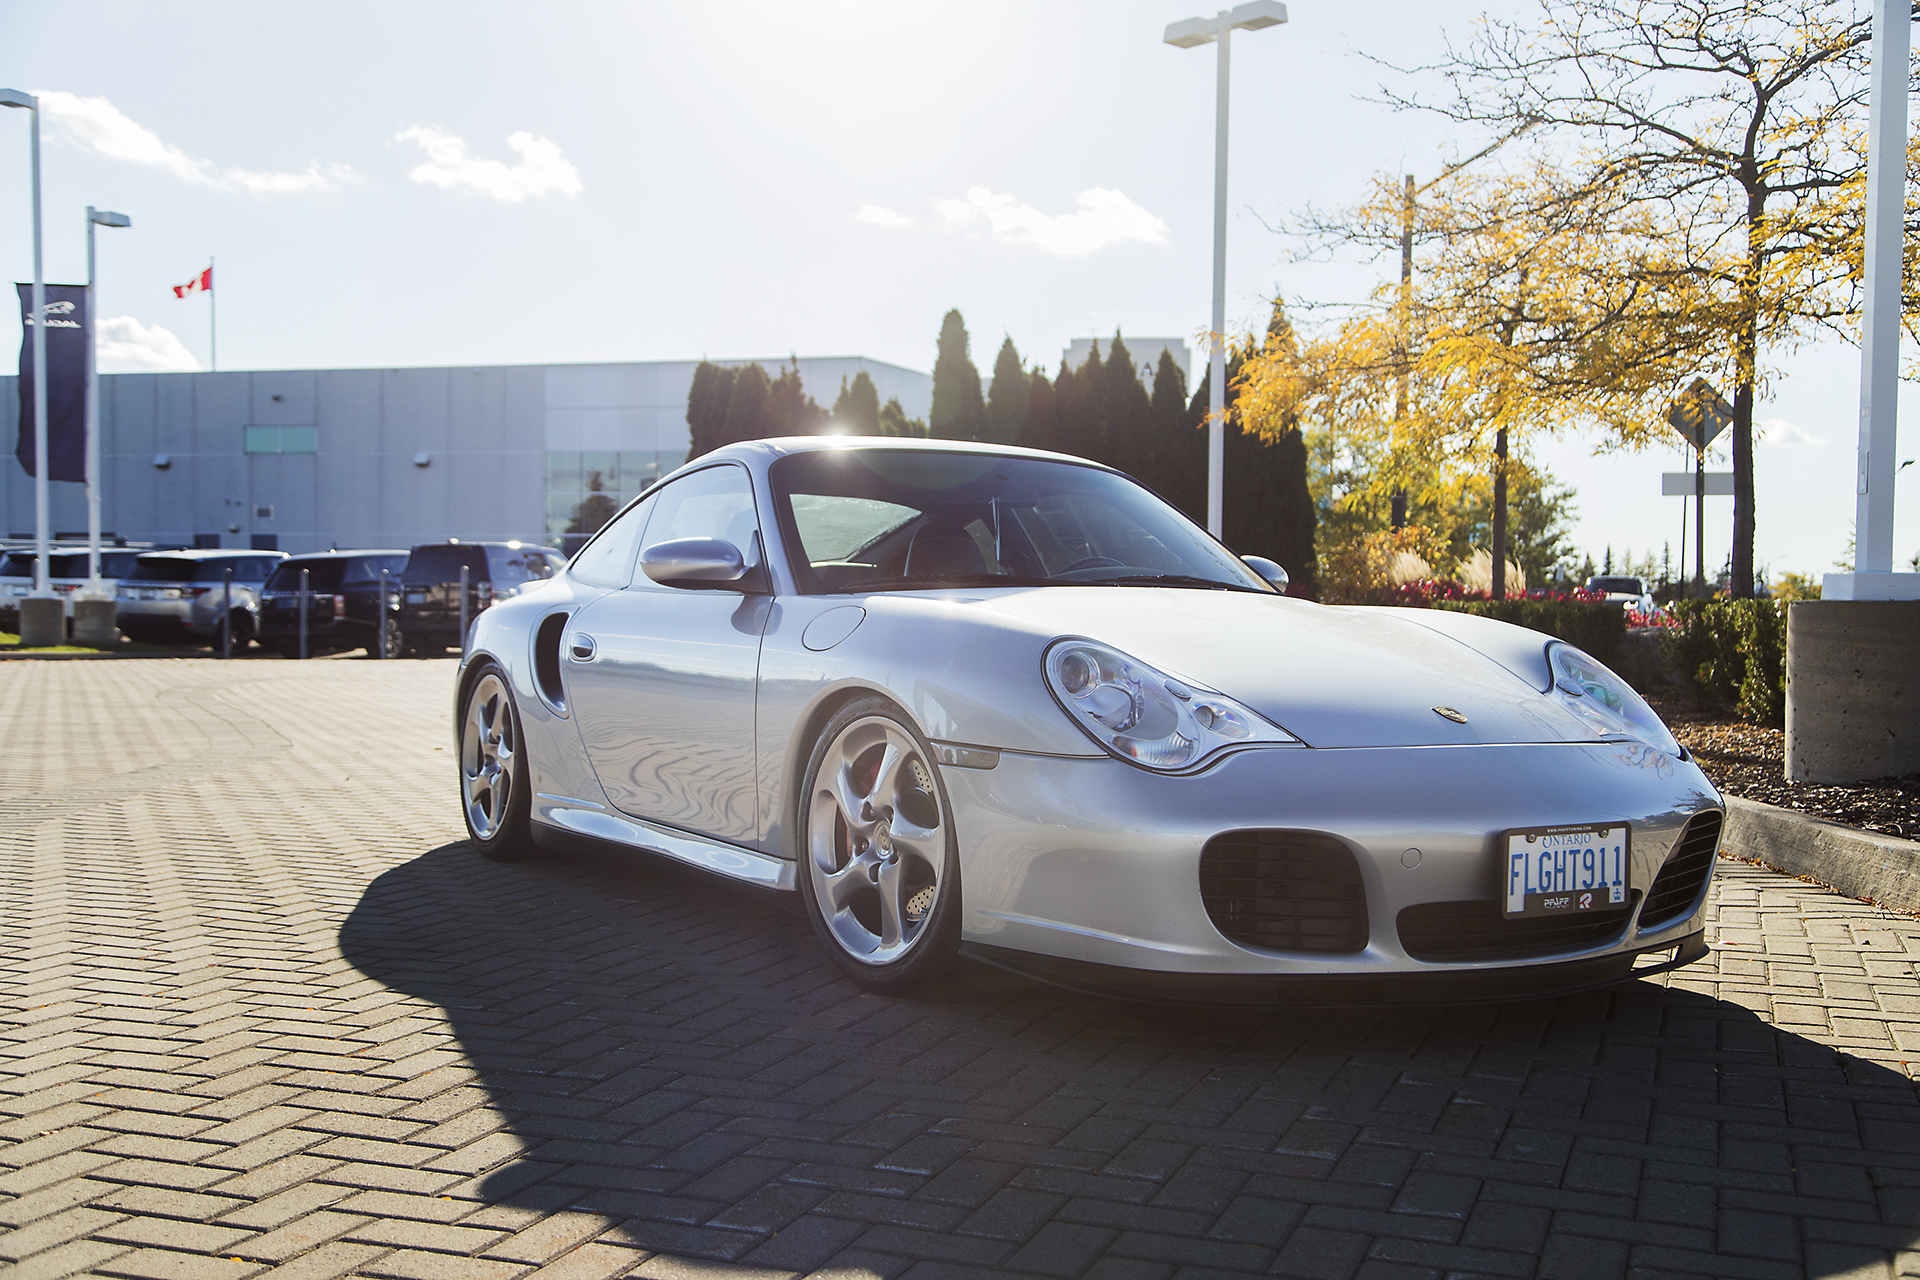 Pfaff Tuning: Jimmy reviews a Markski big turbo 996